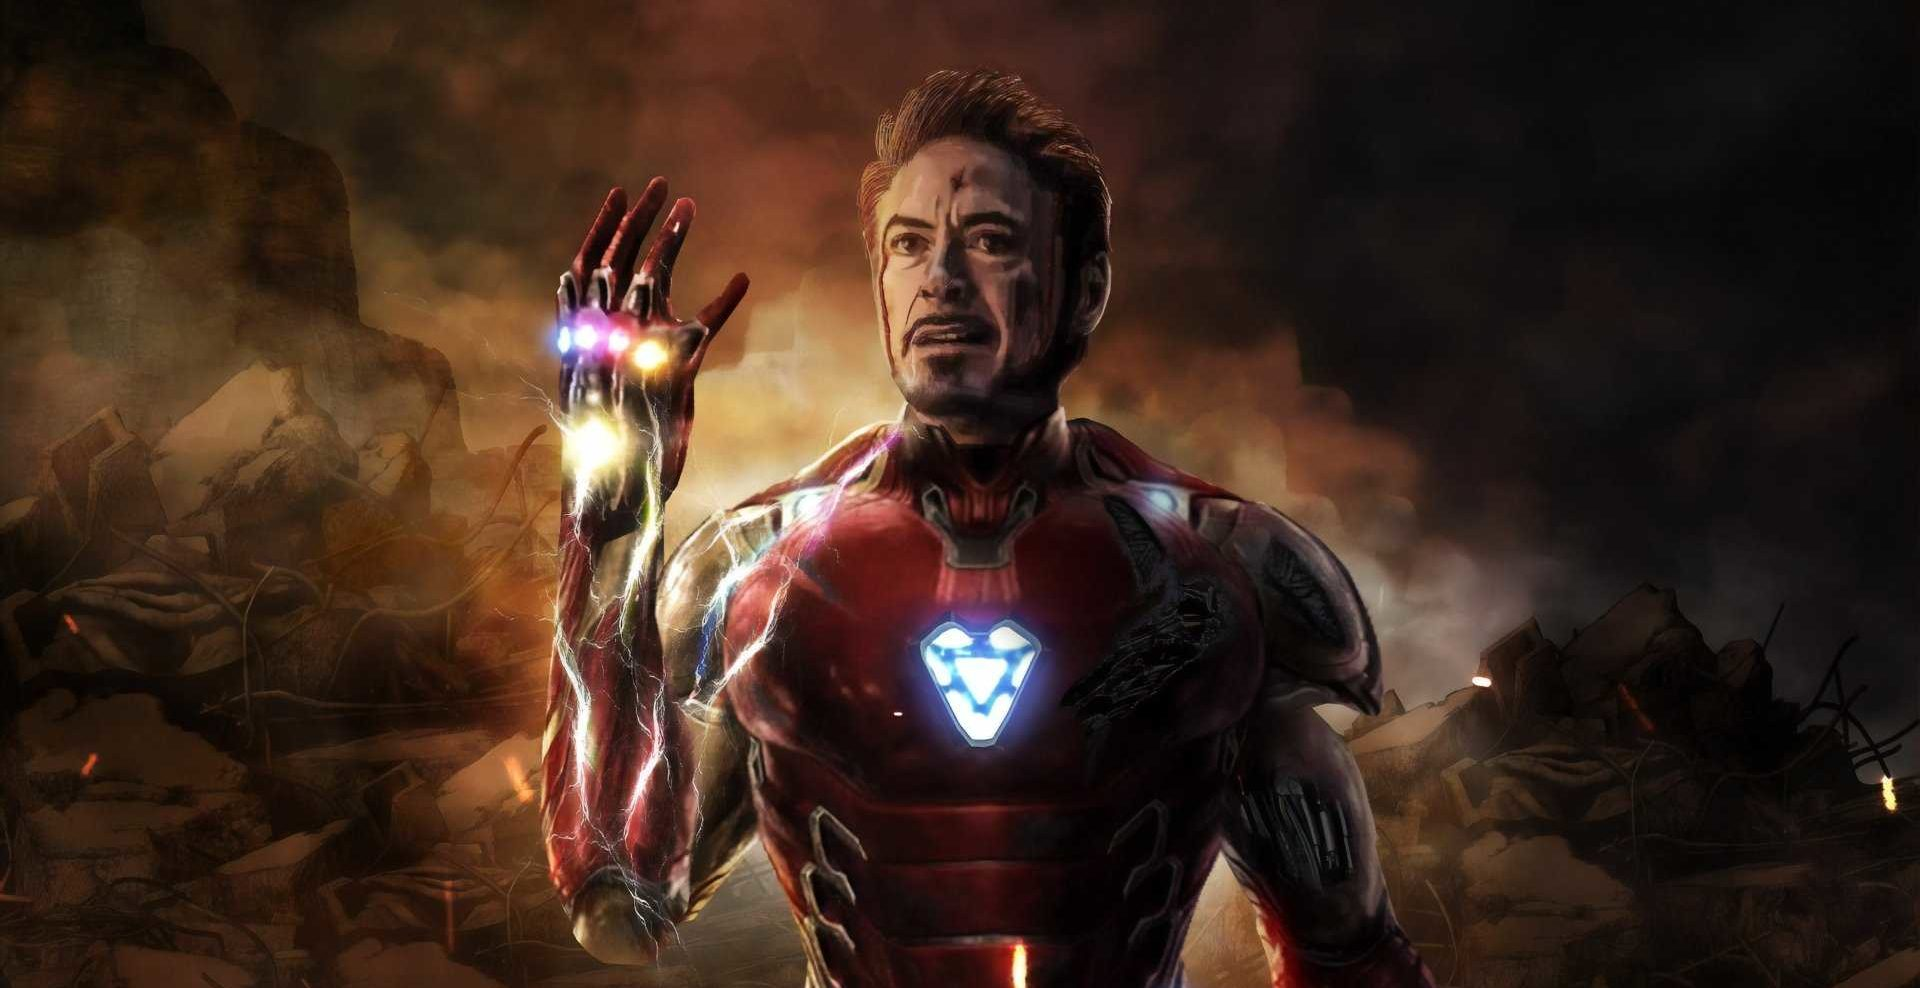 Iron Man Ringtone free download (Recommended)